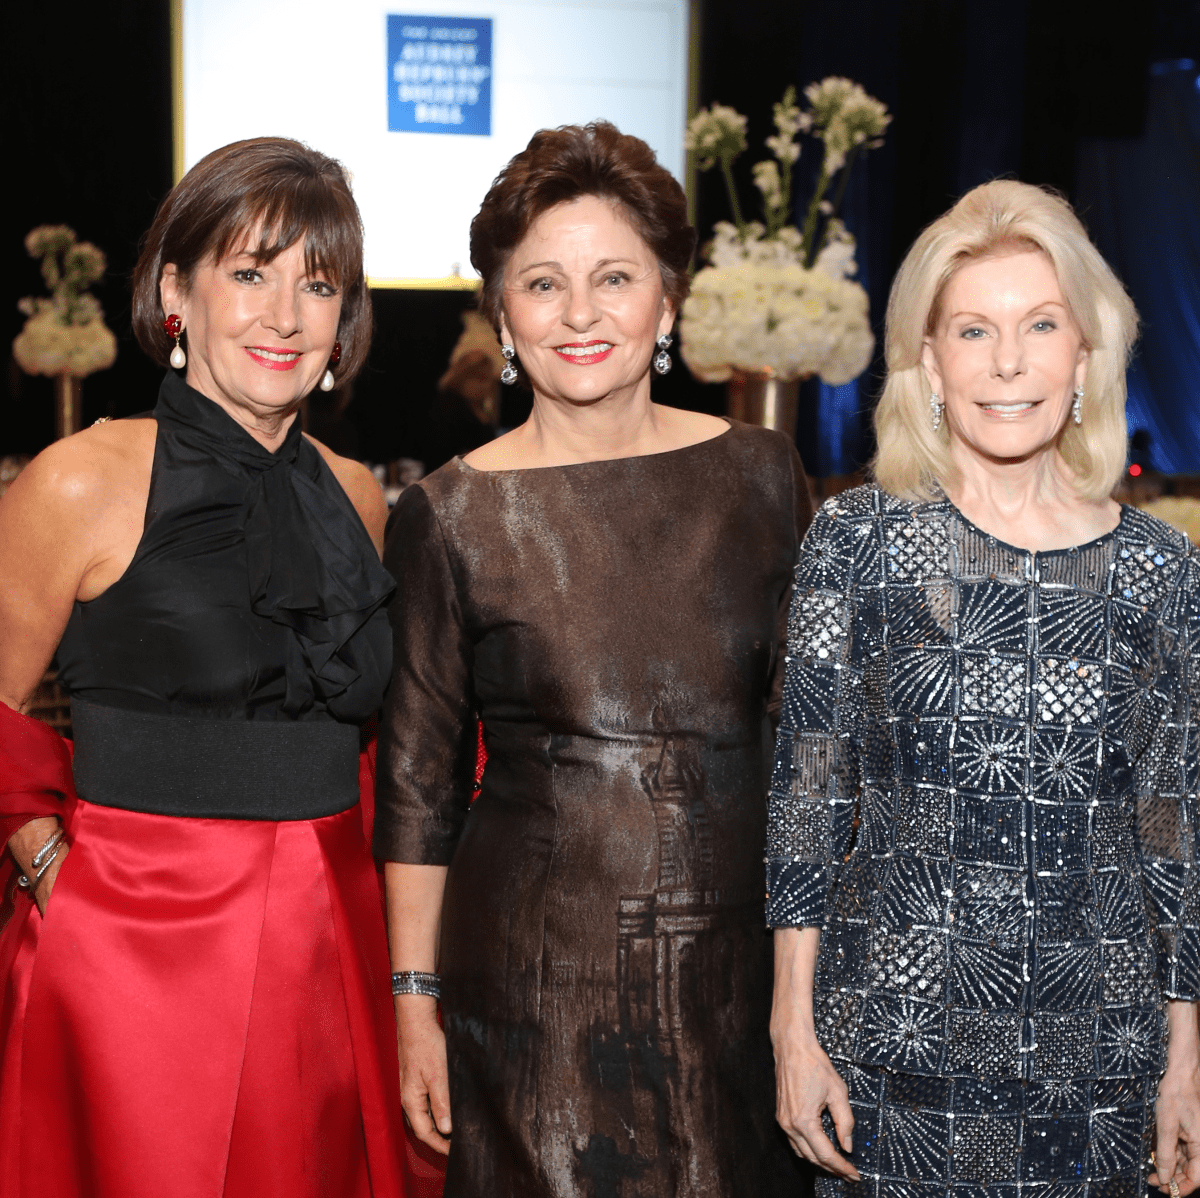 News, Shelby, UNICEF gala, Nov. 2015, Cathy Cleary, Beth Madison, Frances Marzio